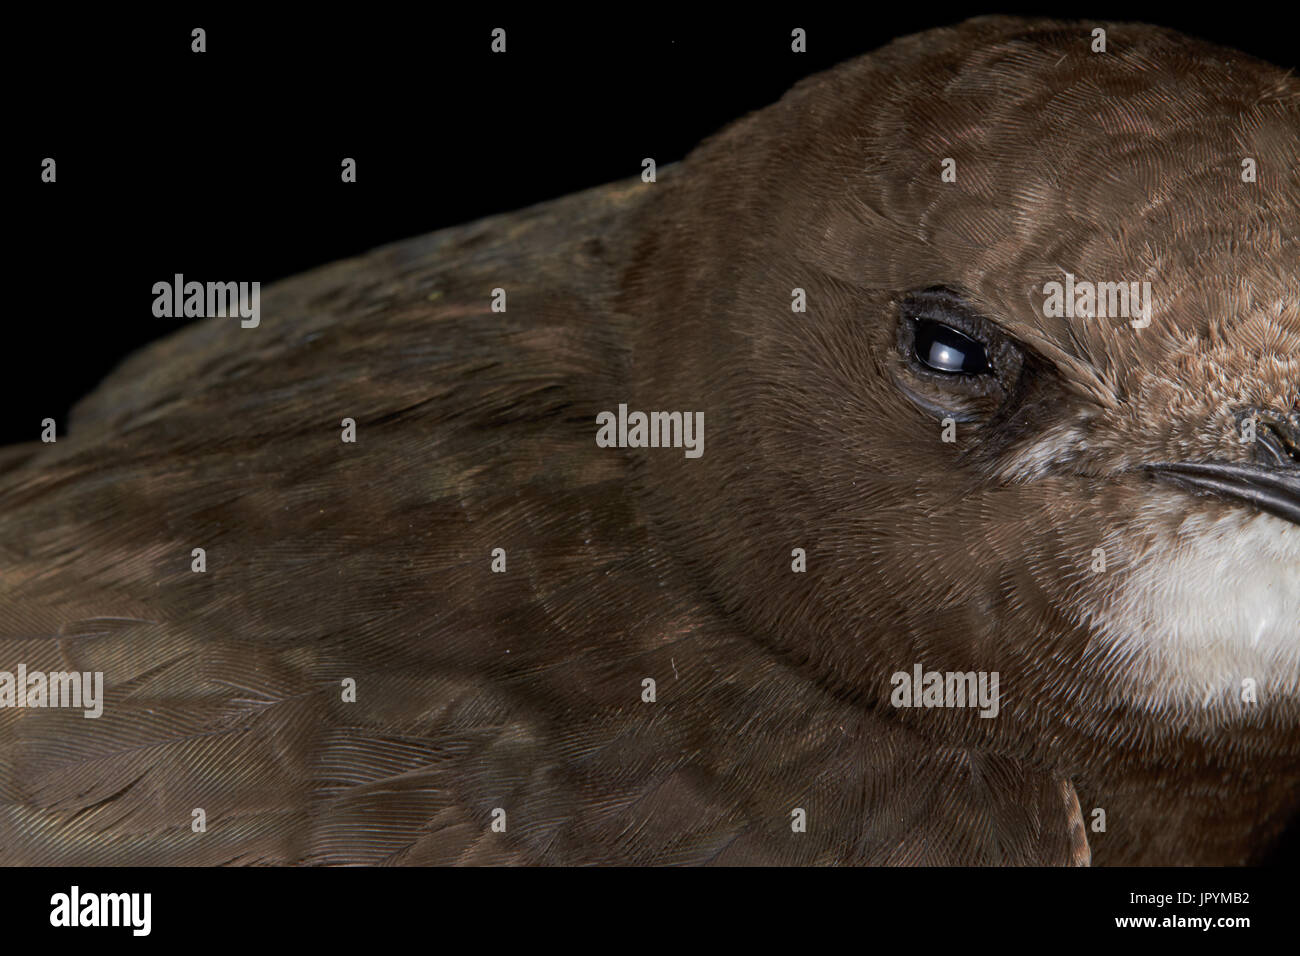 Portrait de Swift commun sur fond noir Photo Stock